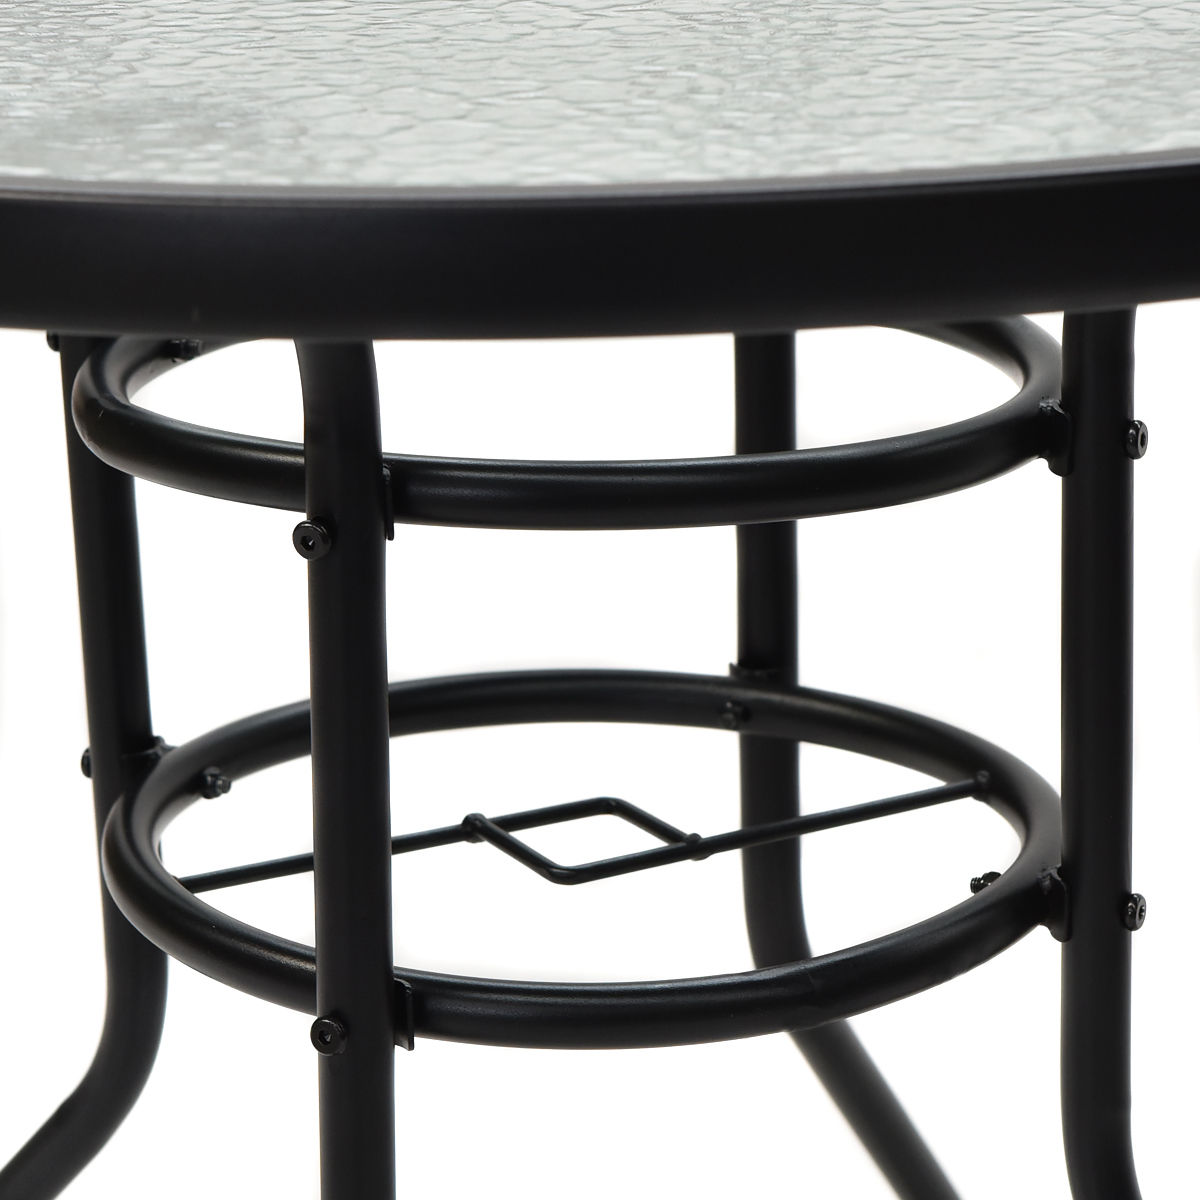 31.5'' Patio Round Table Tempered Glass Steel Frame Outdoor Pool Yard - image 3 de 7